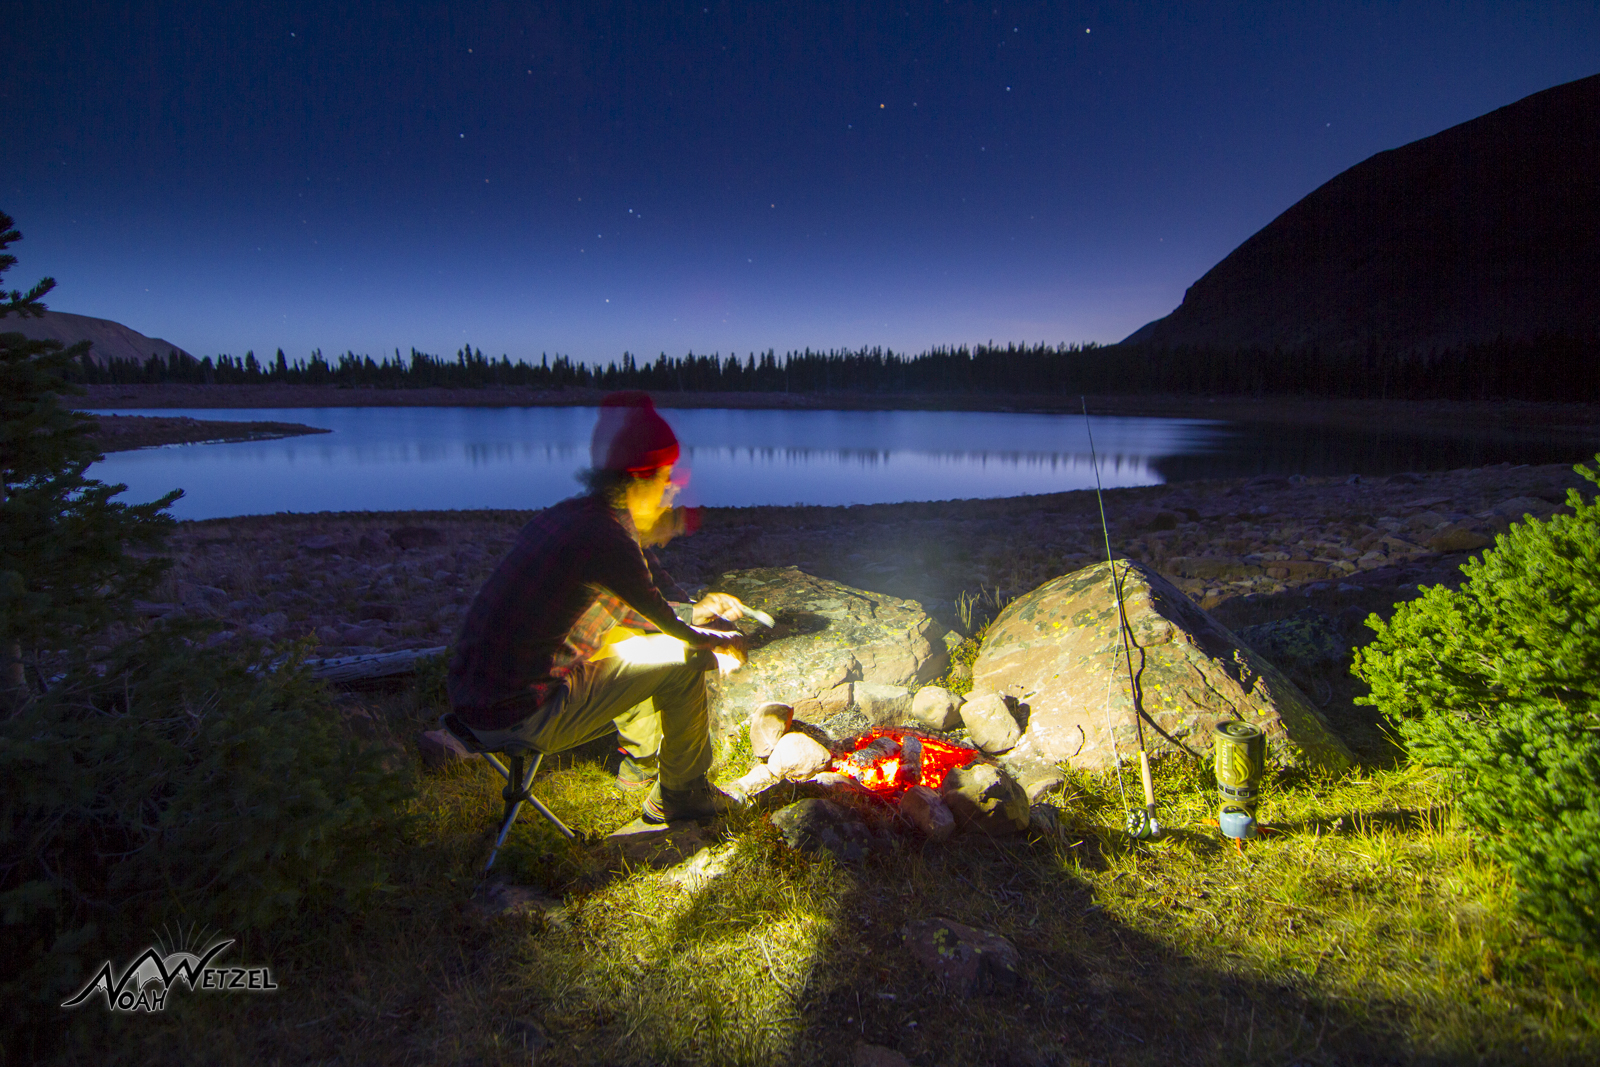 Self Portrait. Cooking up a freshly caught fish dinner at the 11,100ft East Timothy Lake. High Uintas Wildereness, Utah.